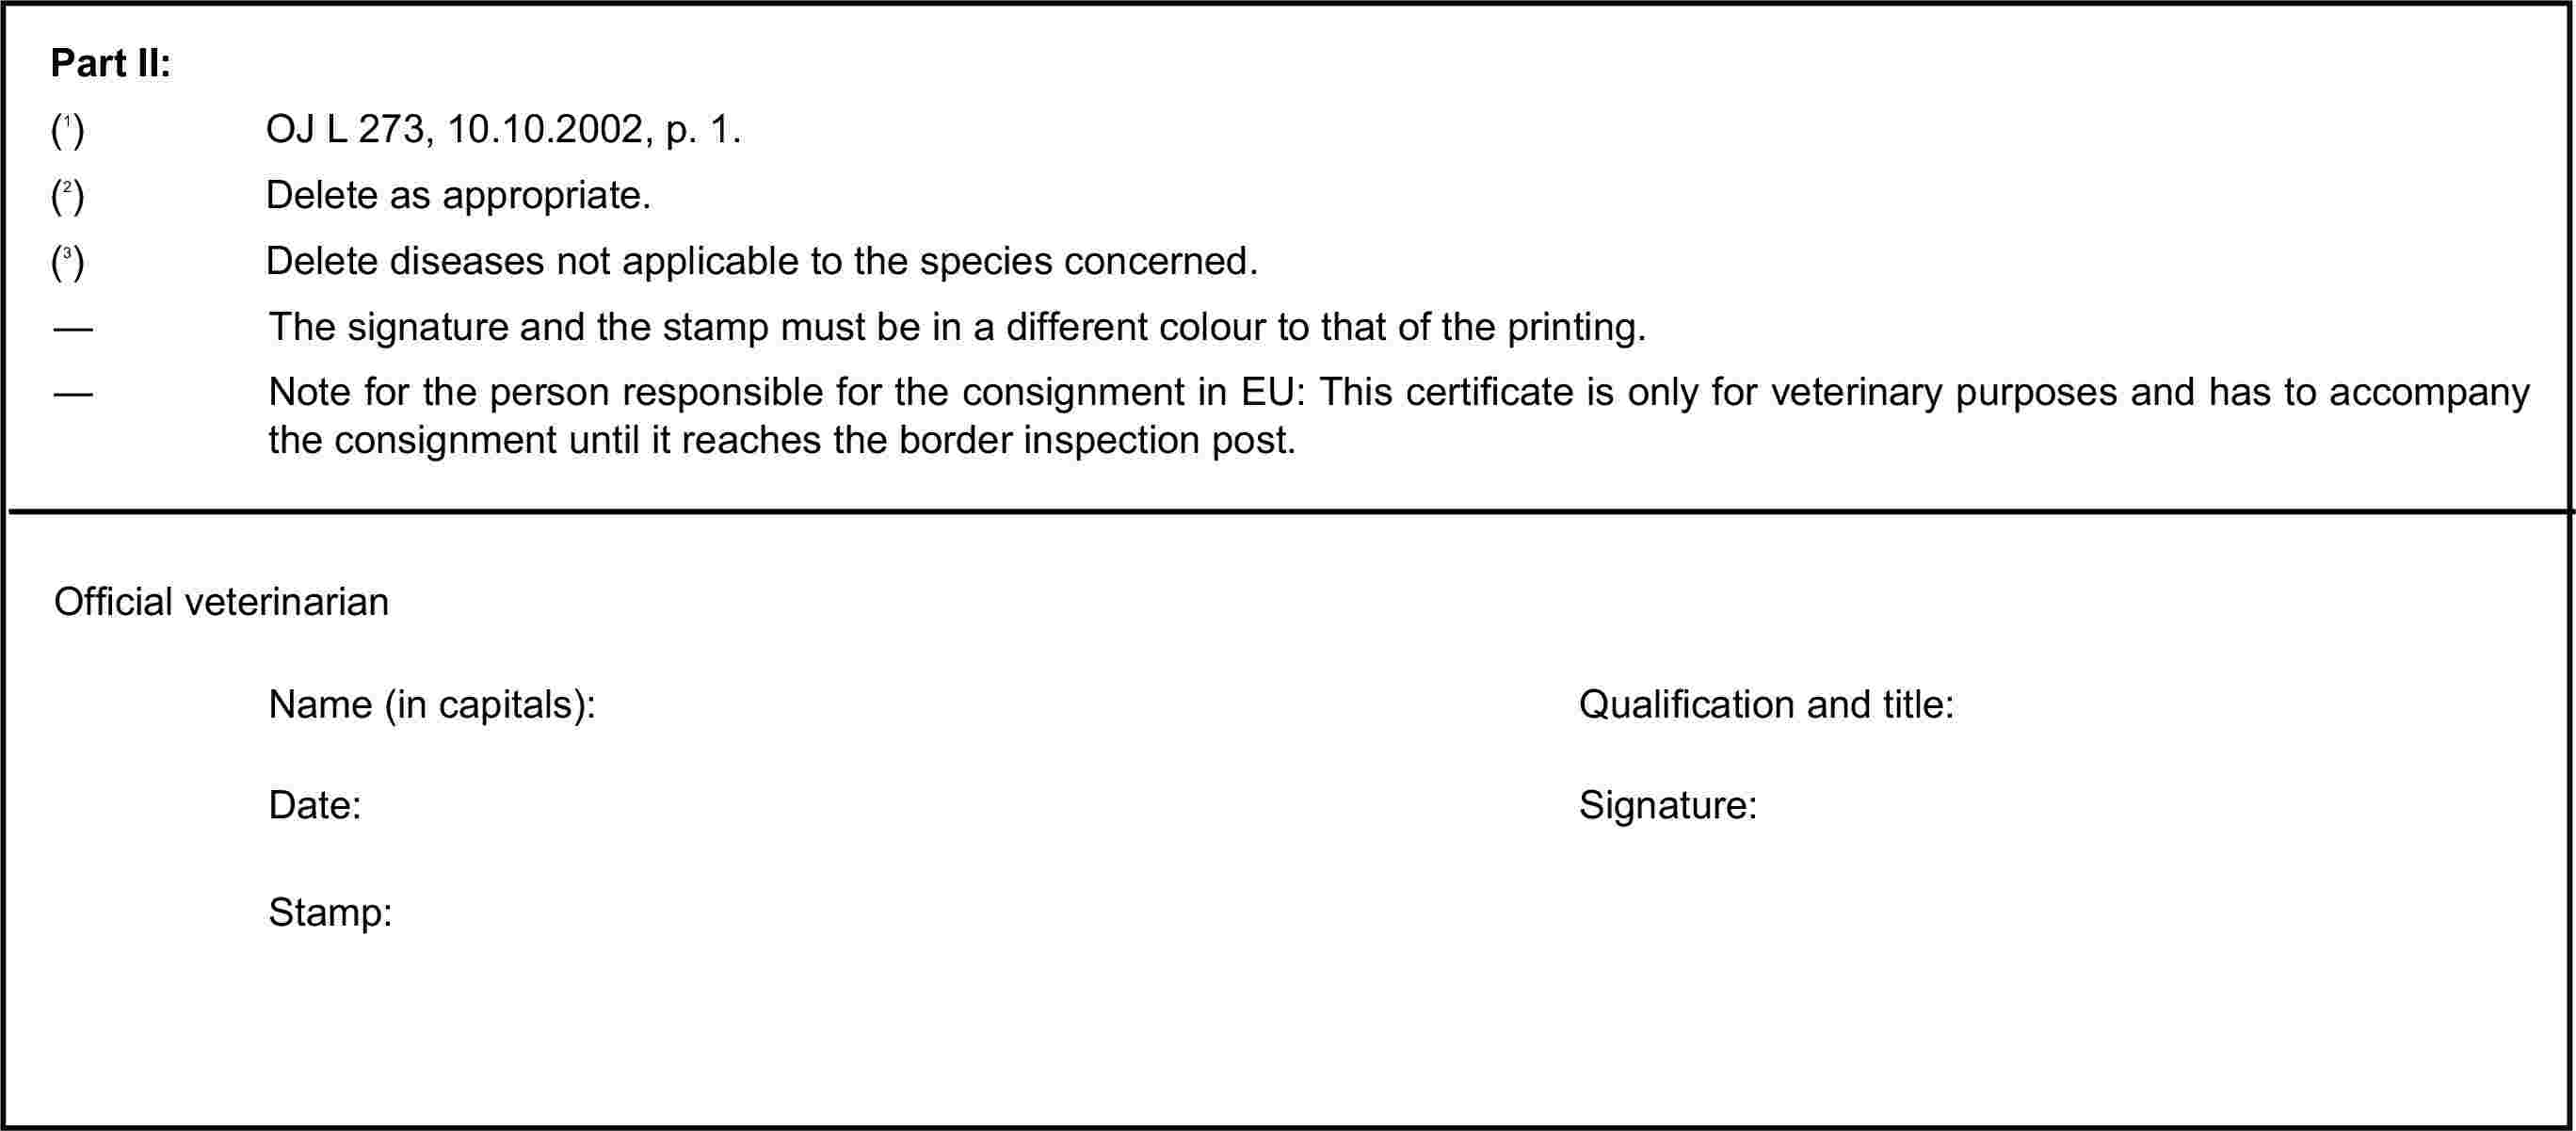 Part II:(1) OJ L 273, 10.10.2002, p. 1.(2) Delete as appropriate.(3) Delete diseases not applicable to the species concerned.— The signature and the stamp must be in a different colour to that of the printing.— Note for the person responsible for the consignment in EU: This certificate is only for veterinary purposes and has to accompany the consignment until it reaches the border inspection post.Official veterinarianName (in capitals):Qualification and title:Date:Signature:Stamp: